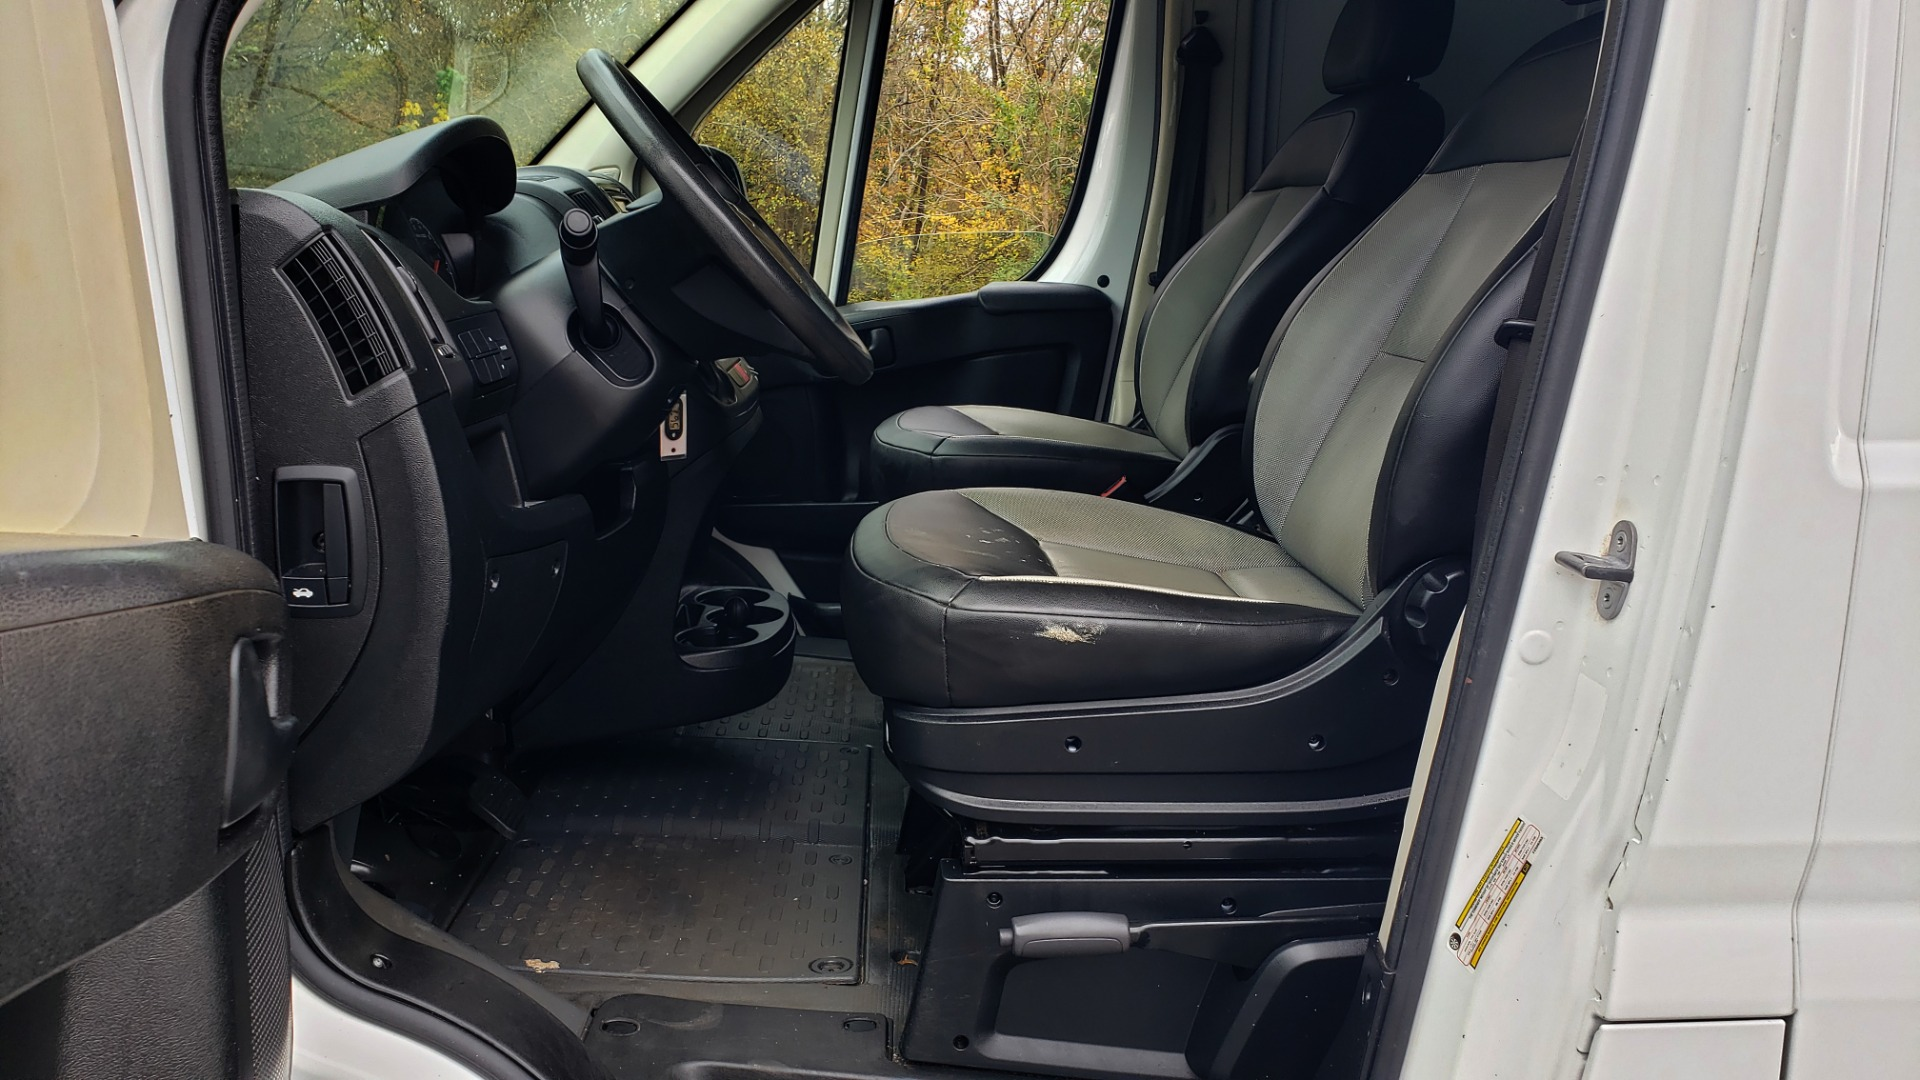 Used 2015 Ram PROMASTER CARGO VAN 136-INCH WB / LOW ROOF / LADDER RACK / INSIDE RACKS for sale Sold at Formula Imports in Charlotte NC 28227 32